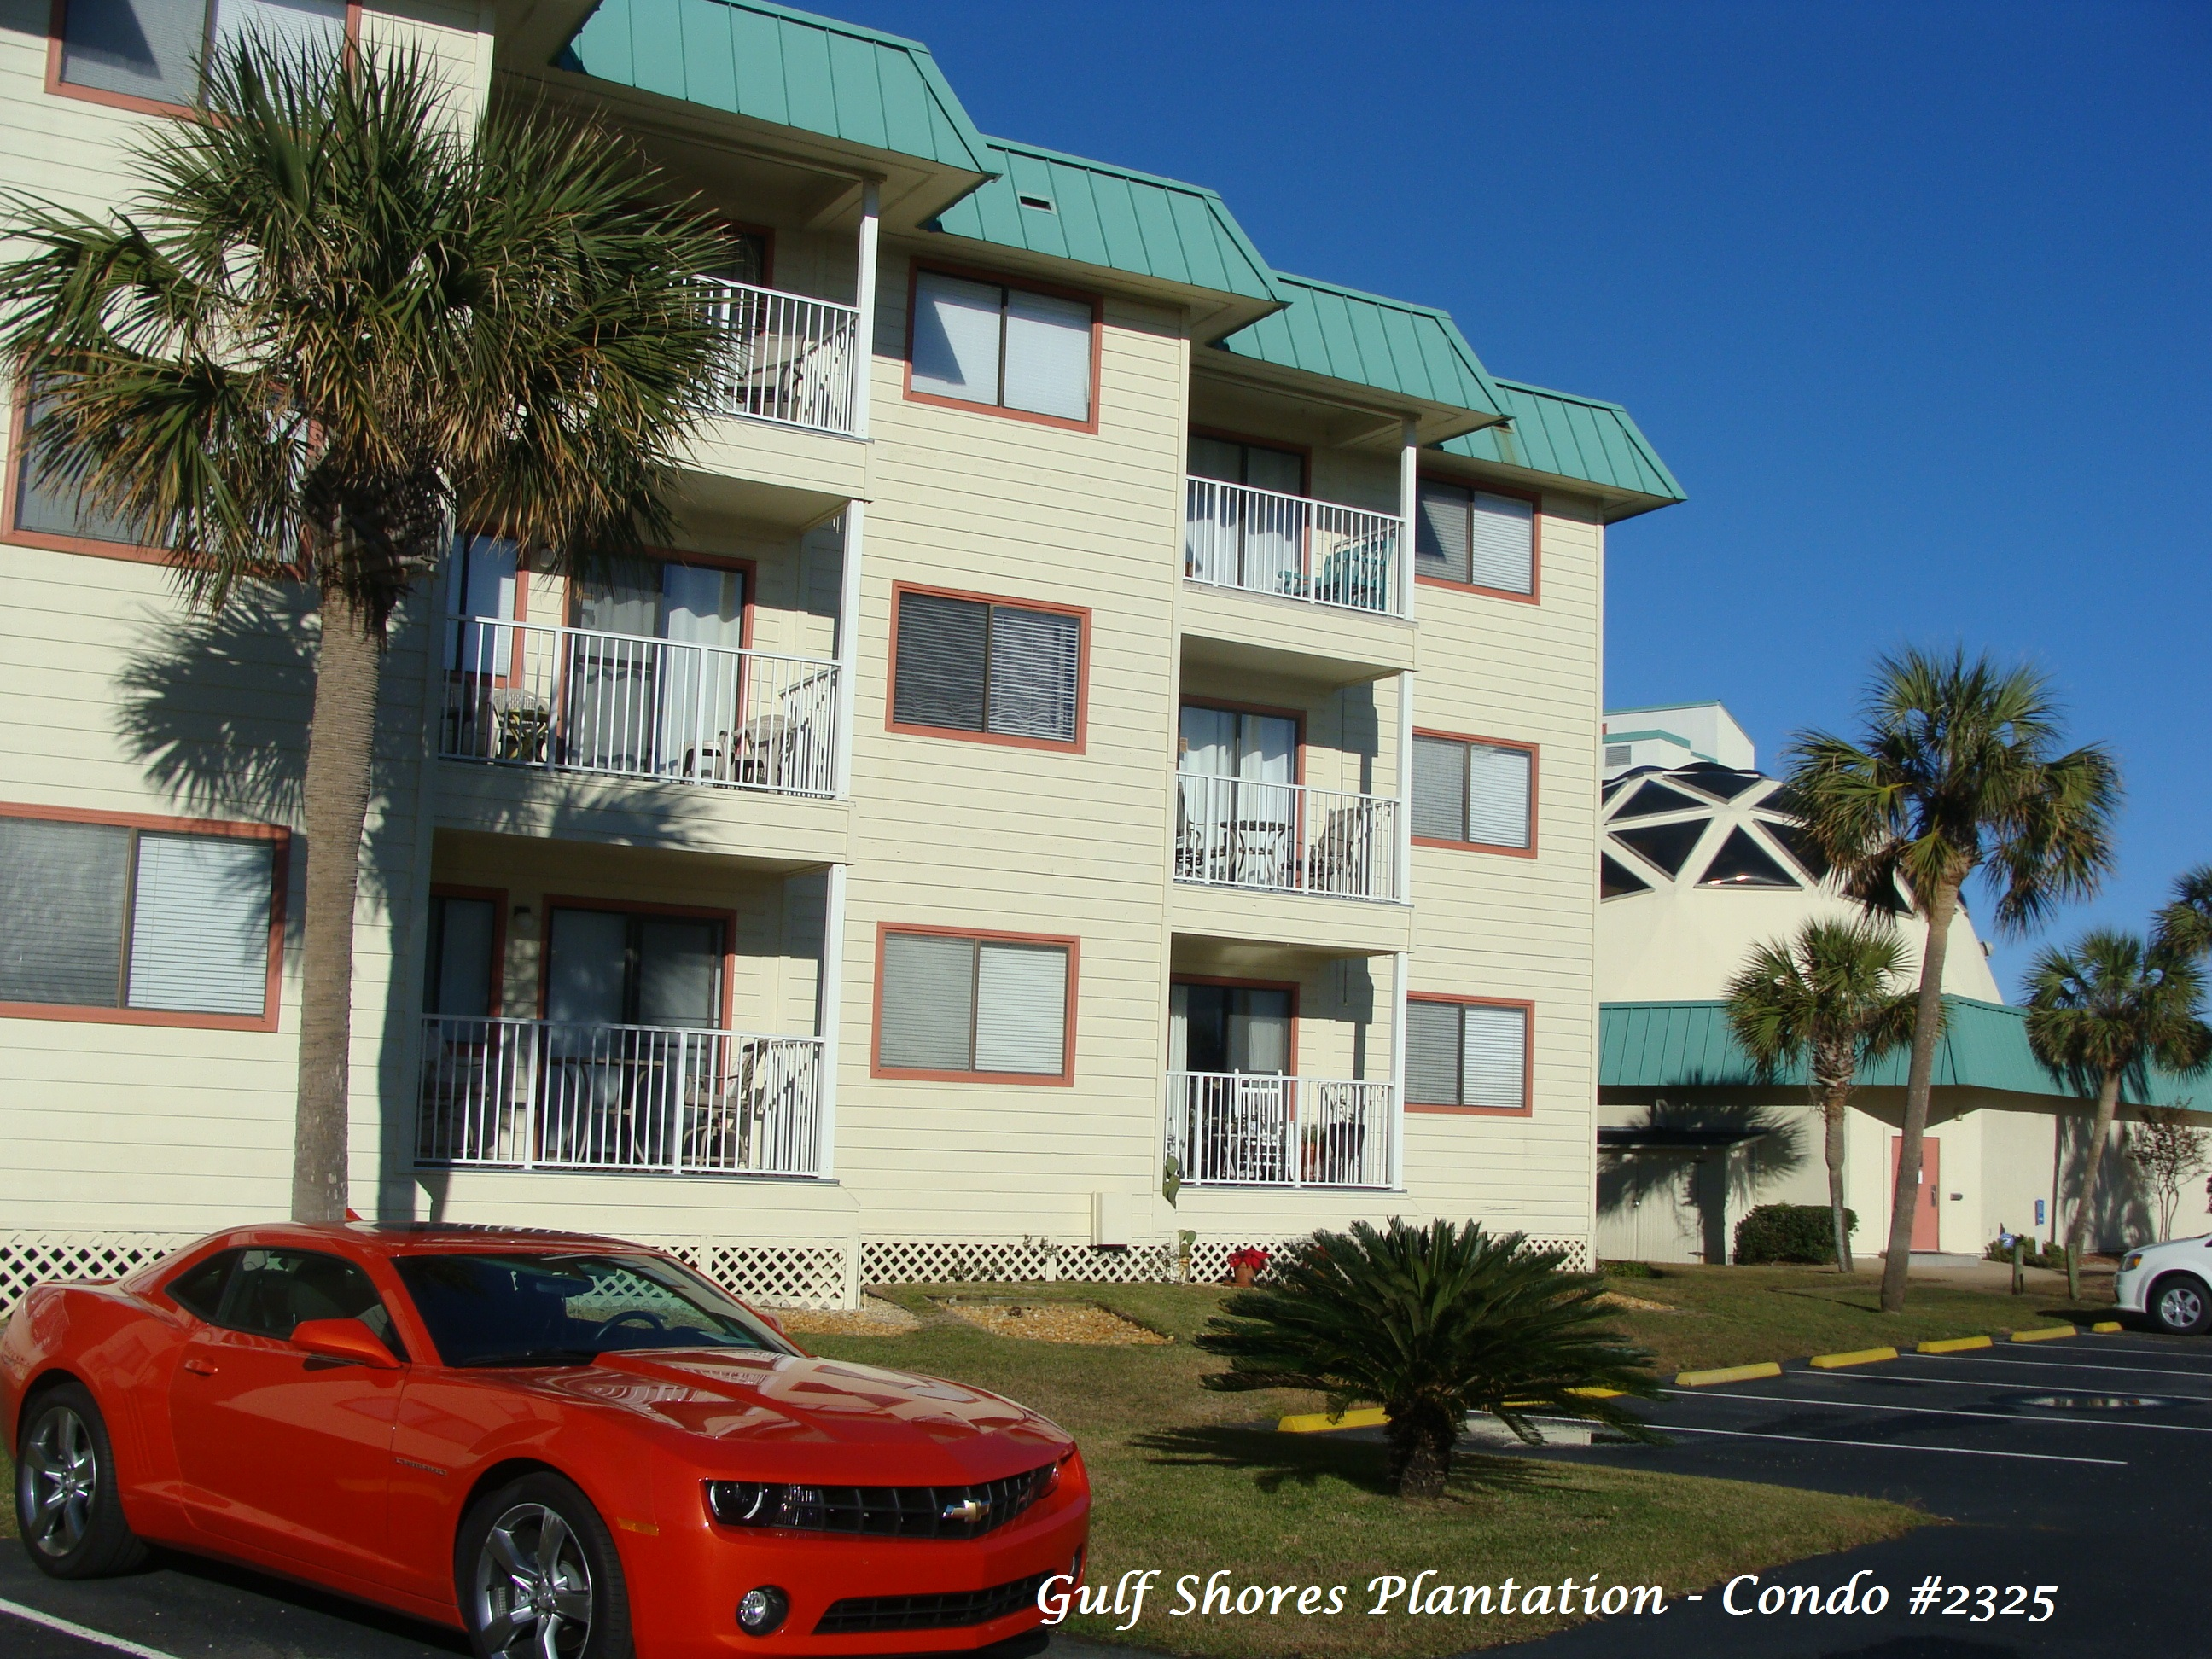 Gulf Shores Plantation | OurCondoRental